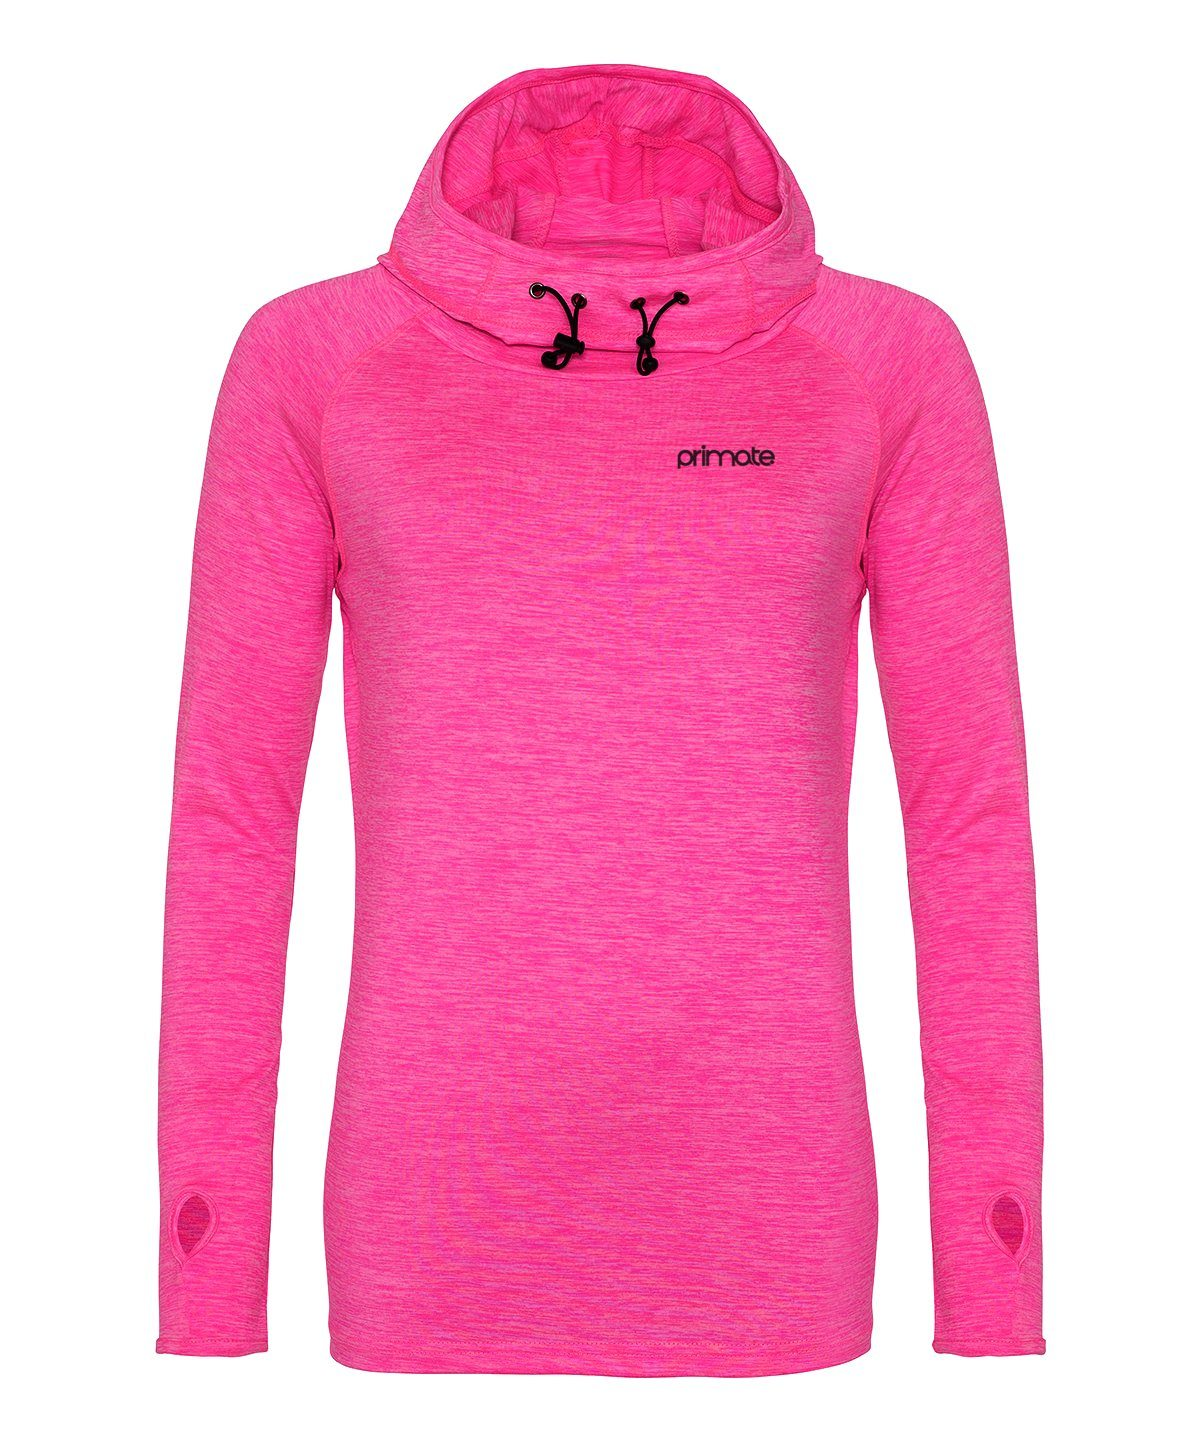 Women's Performance Cowl Neck Hoodie Primate Activewear Electric Pink XS